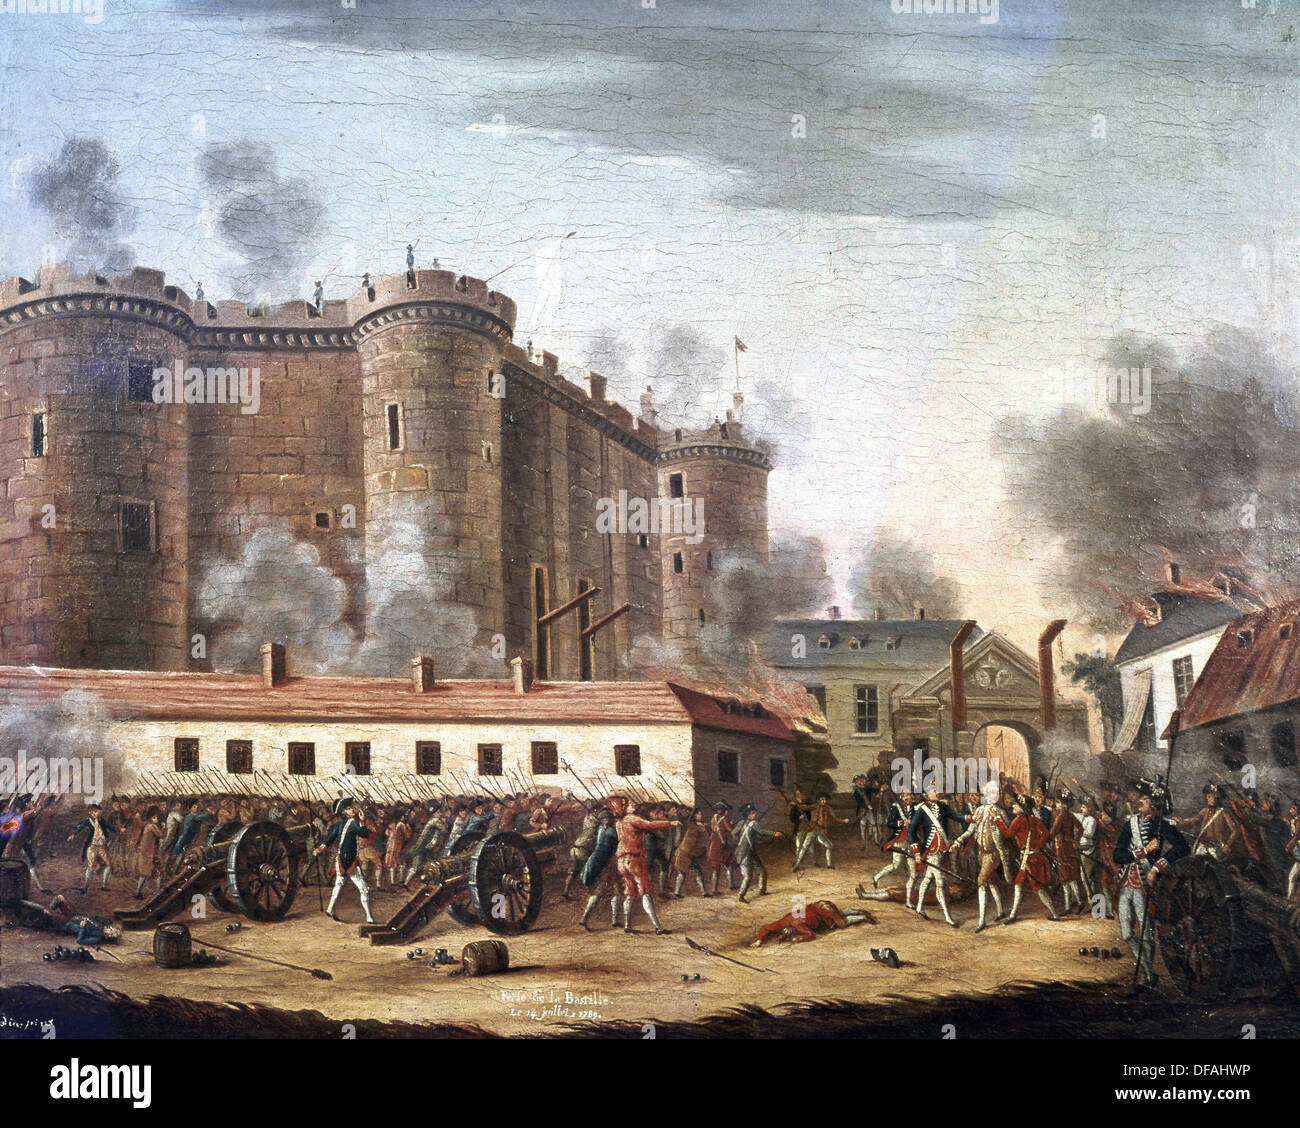 French Revolution. The Storming of the Bastille. July 14, 1789. Oil on  canvas. 18th century. Carnavalet Museum. Paris. France.